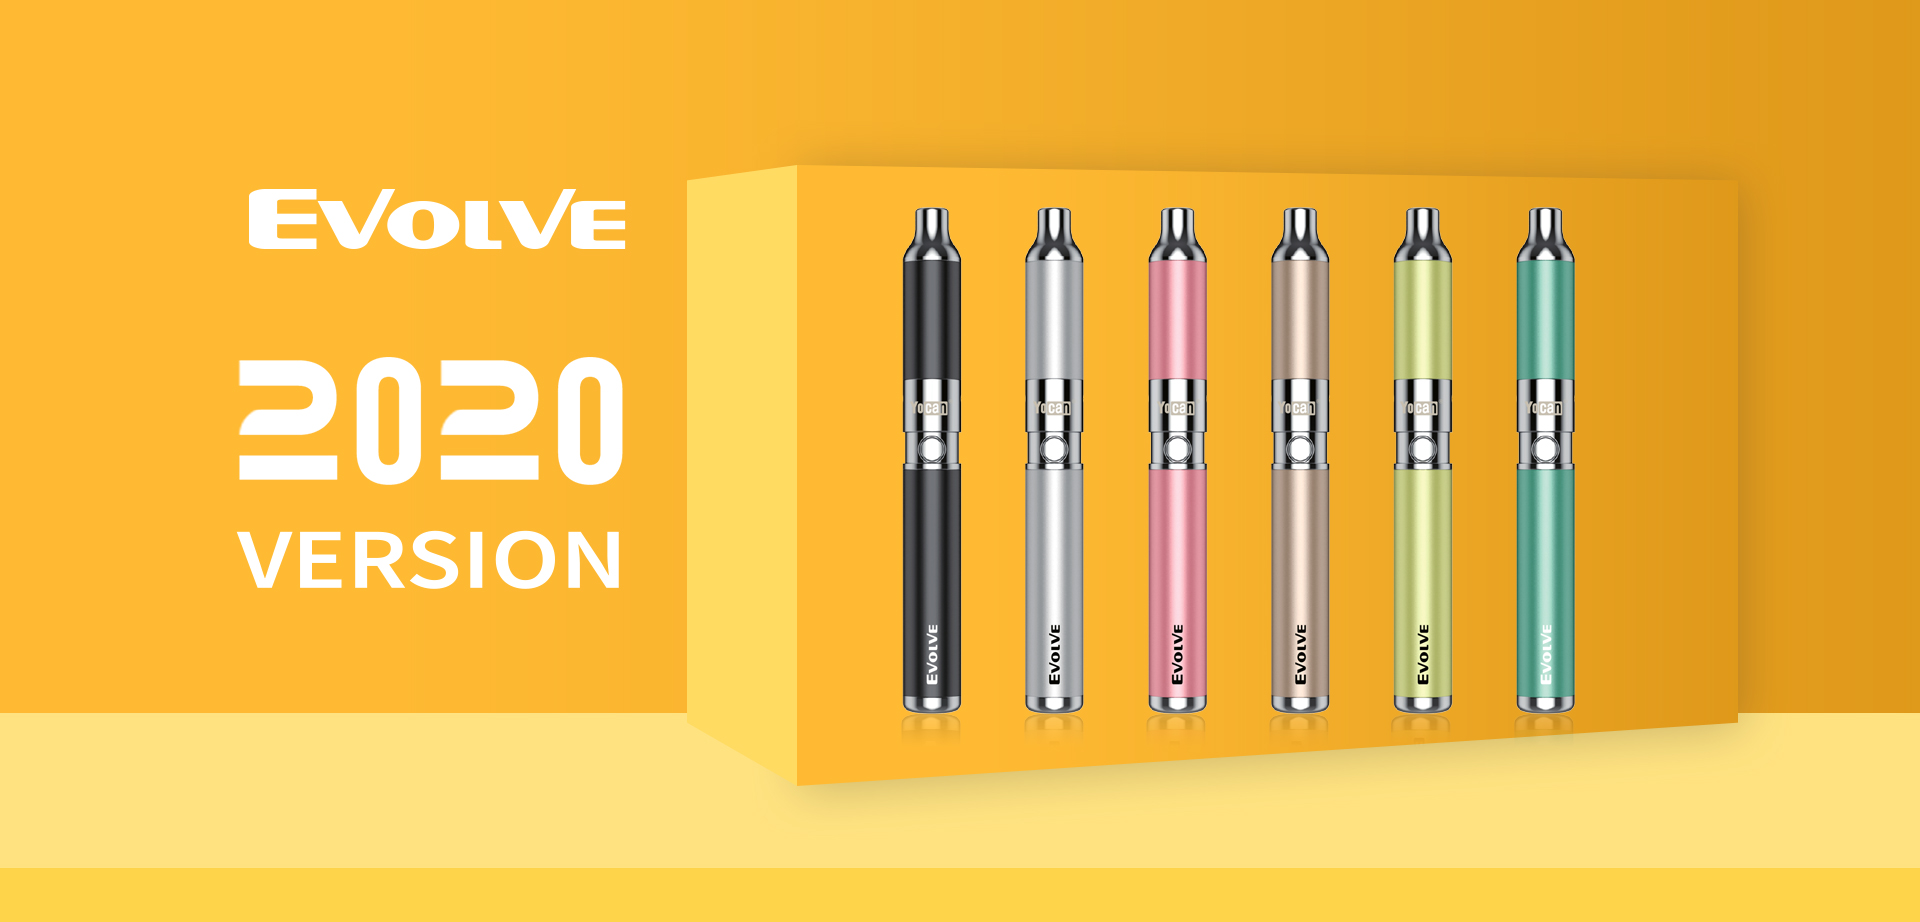 The Yocan Evolve vape pen 2020 version is a discreet sleek wax vaporizer mod that delivers huge clean hits with it's Quartz Dual Coil (QDC) Technology.